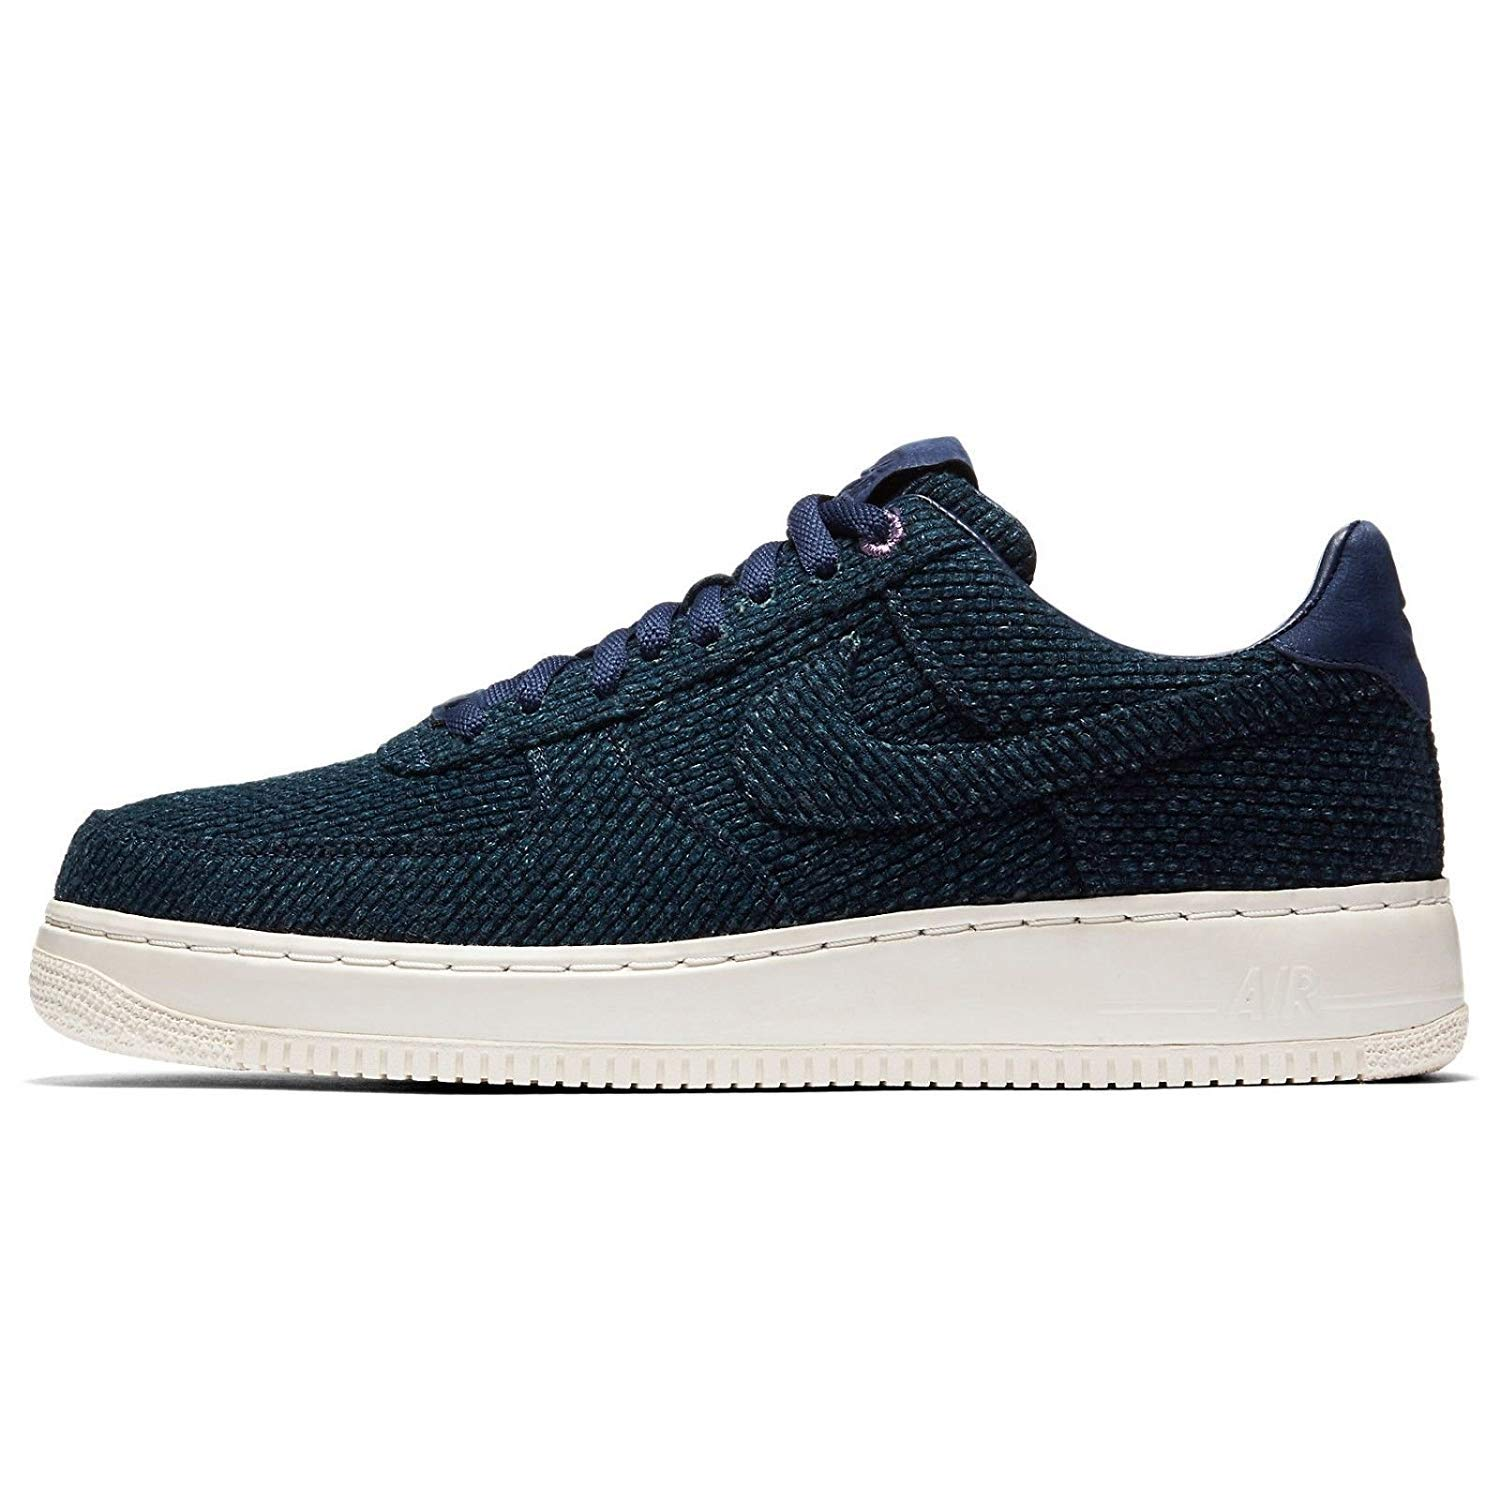 Aizome Sz Japan Air Force Sashiko Nike Low 444 Navy 1 9ar4670 Blue TulFcJ1K35